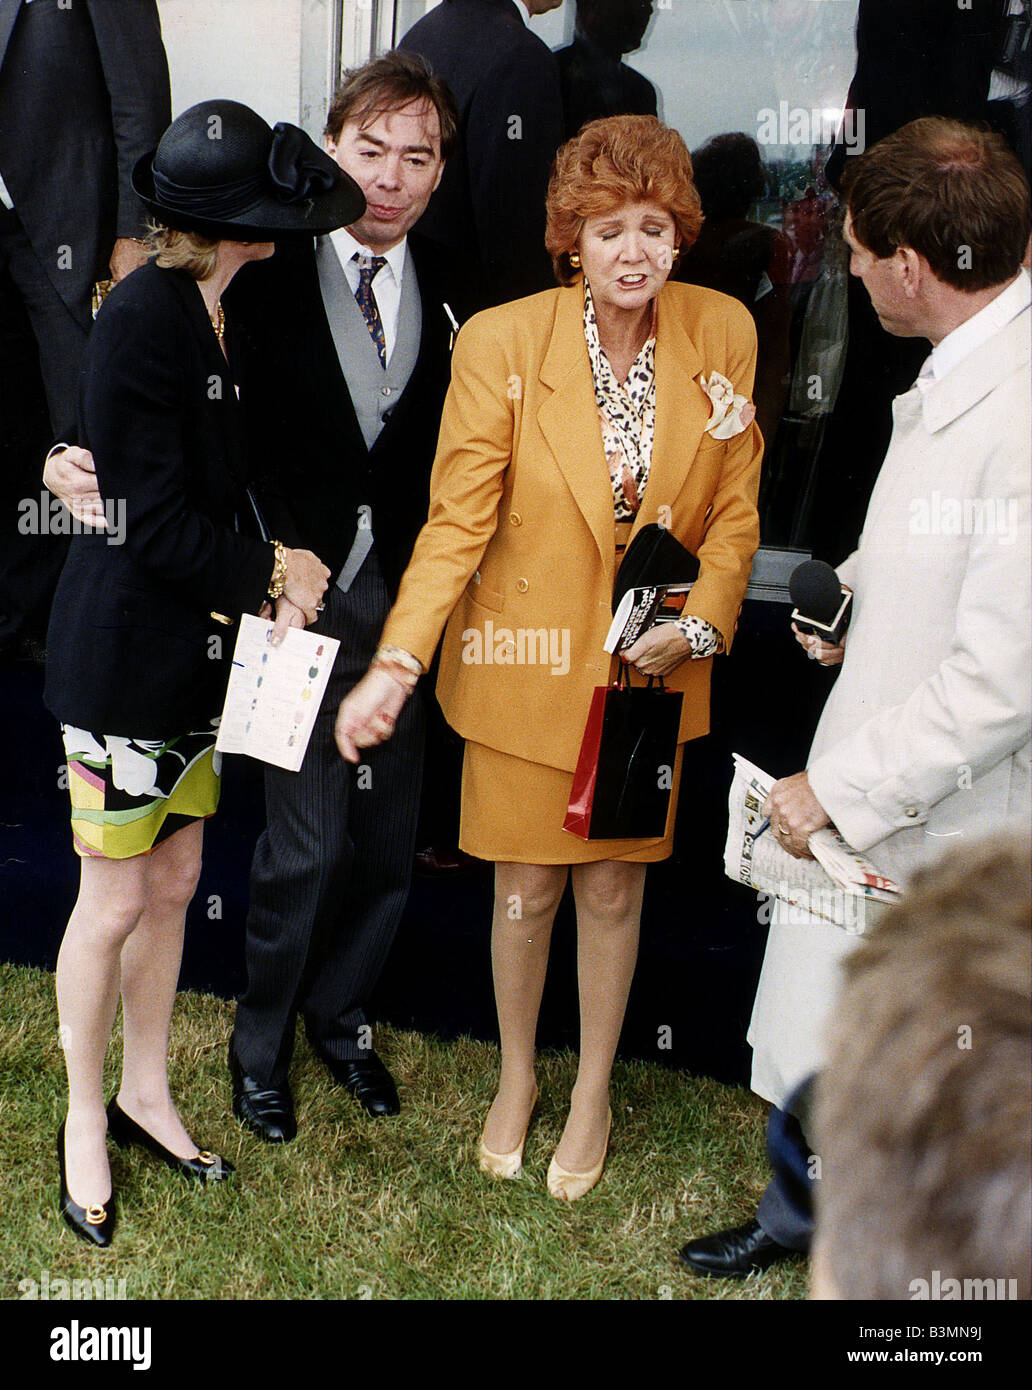 Cilla Black Tv Presenter And Singer With Composer Andrew Lloyd Webber And His Wife Madelaine Lloyd Webber